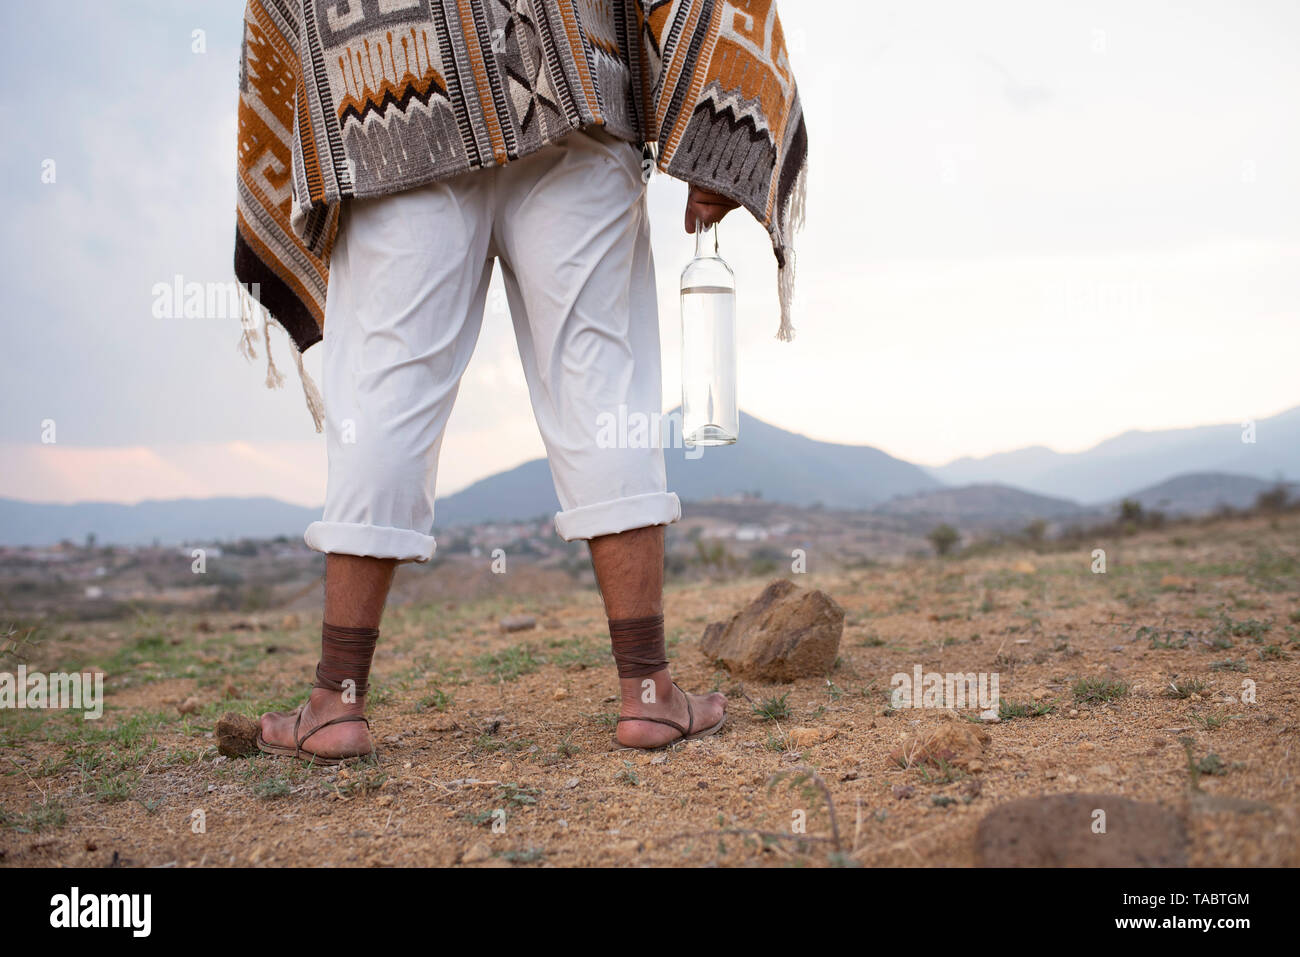 White Trousers Stock Photos & White Trousers Stock Images - Alamy